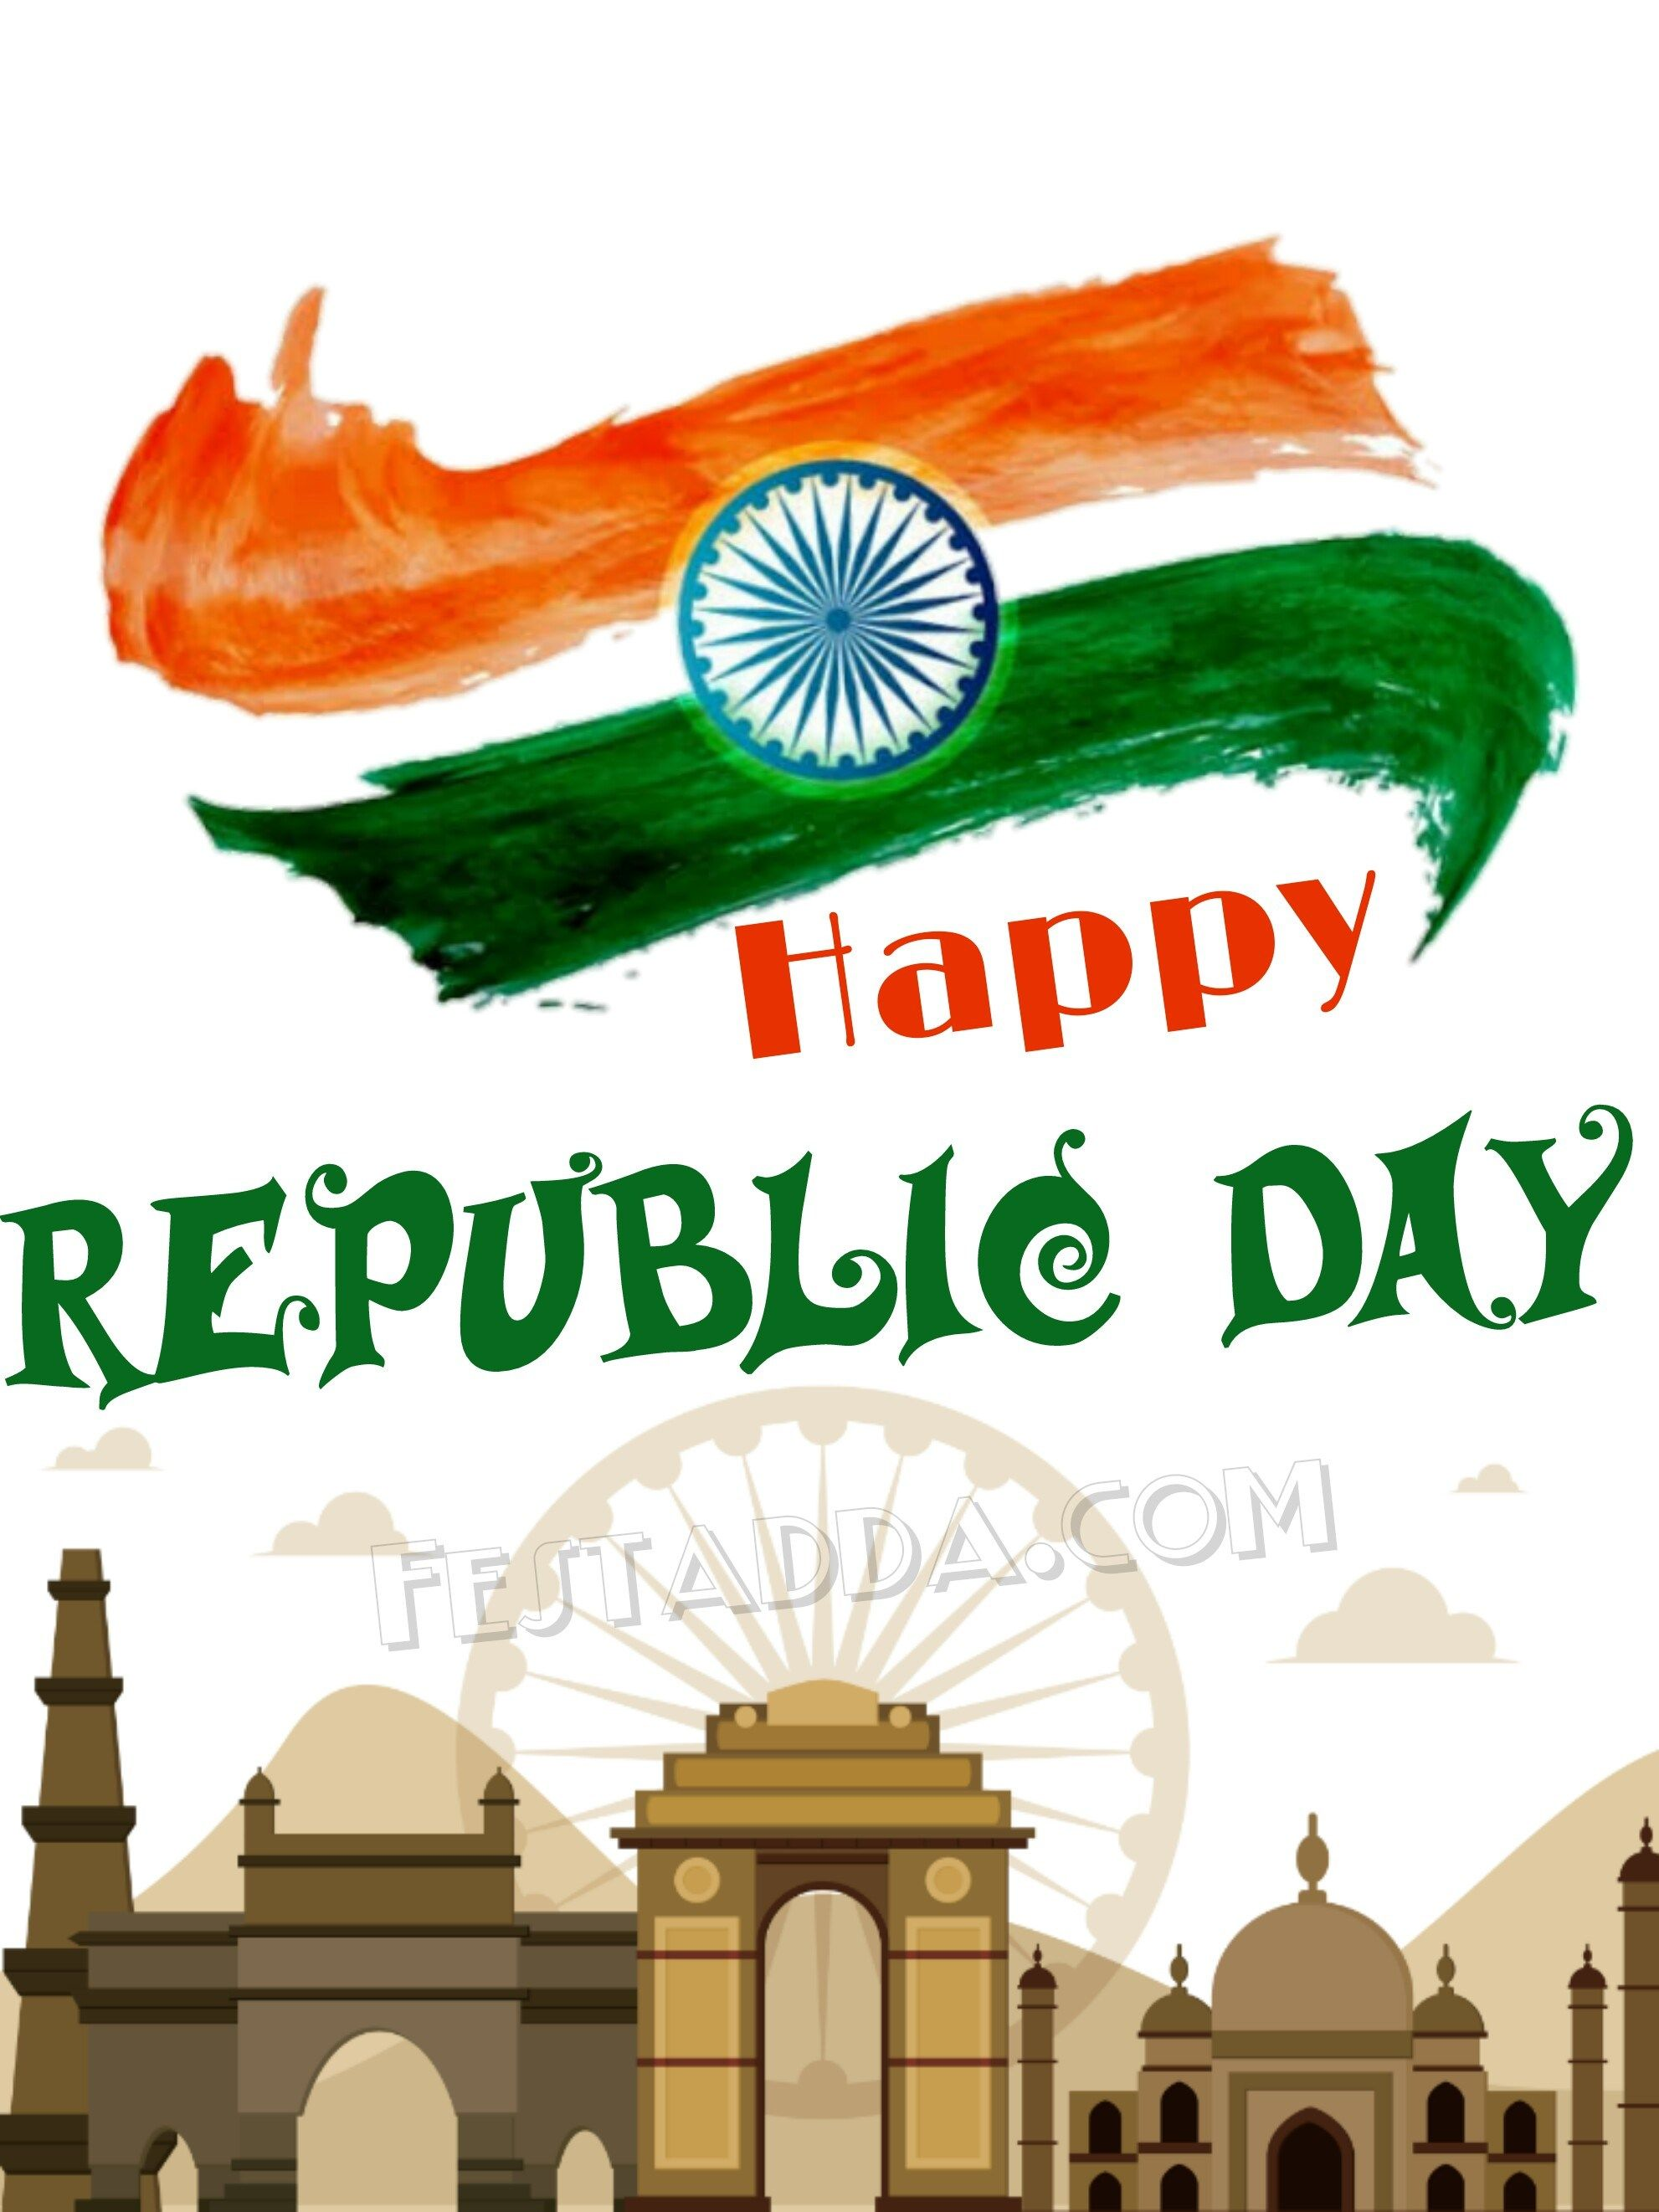 Happy Republic Day 2019 Greeting Cards For Whatsapp Status Happy Republic Day Wallpaper Republic Day India Republic Day Happy republic day images hd 2021